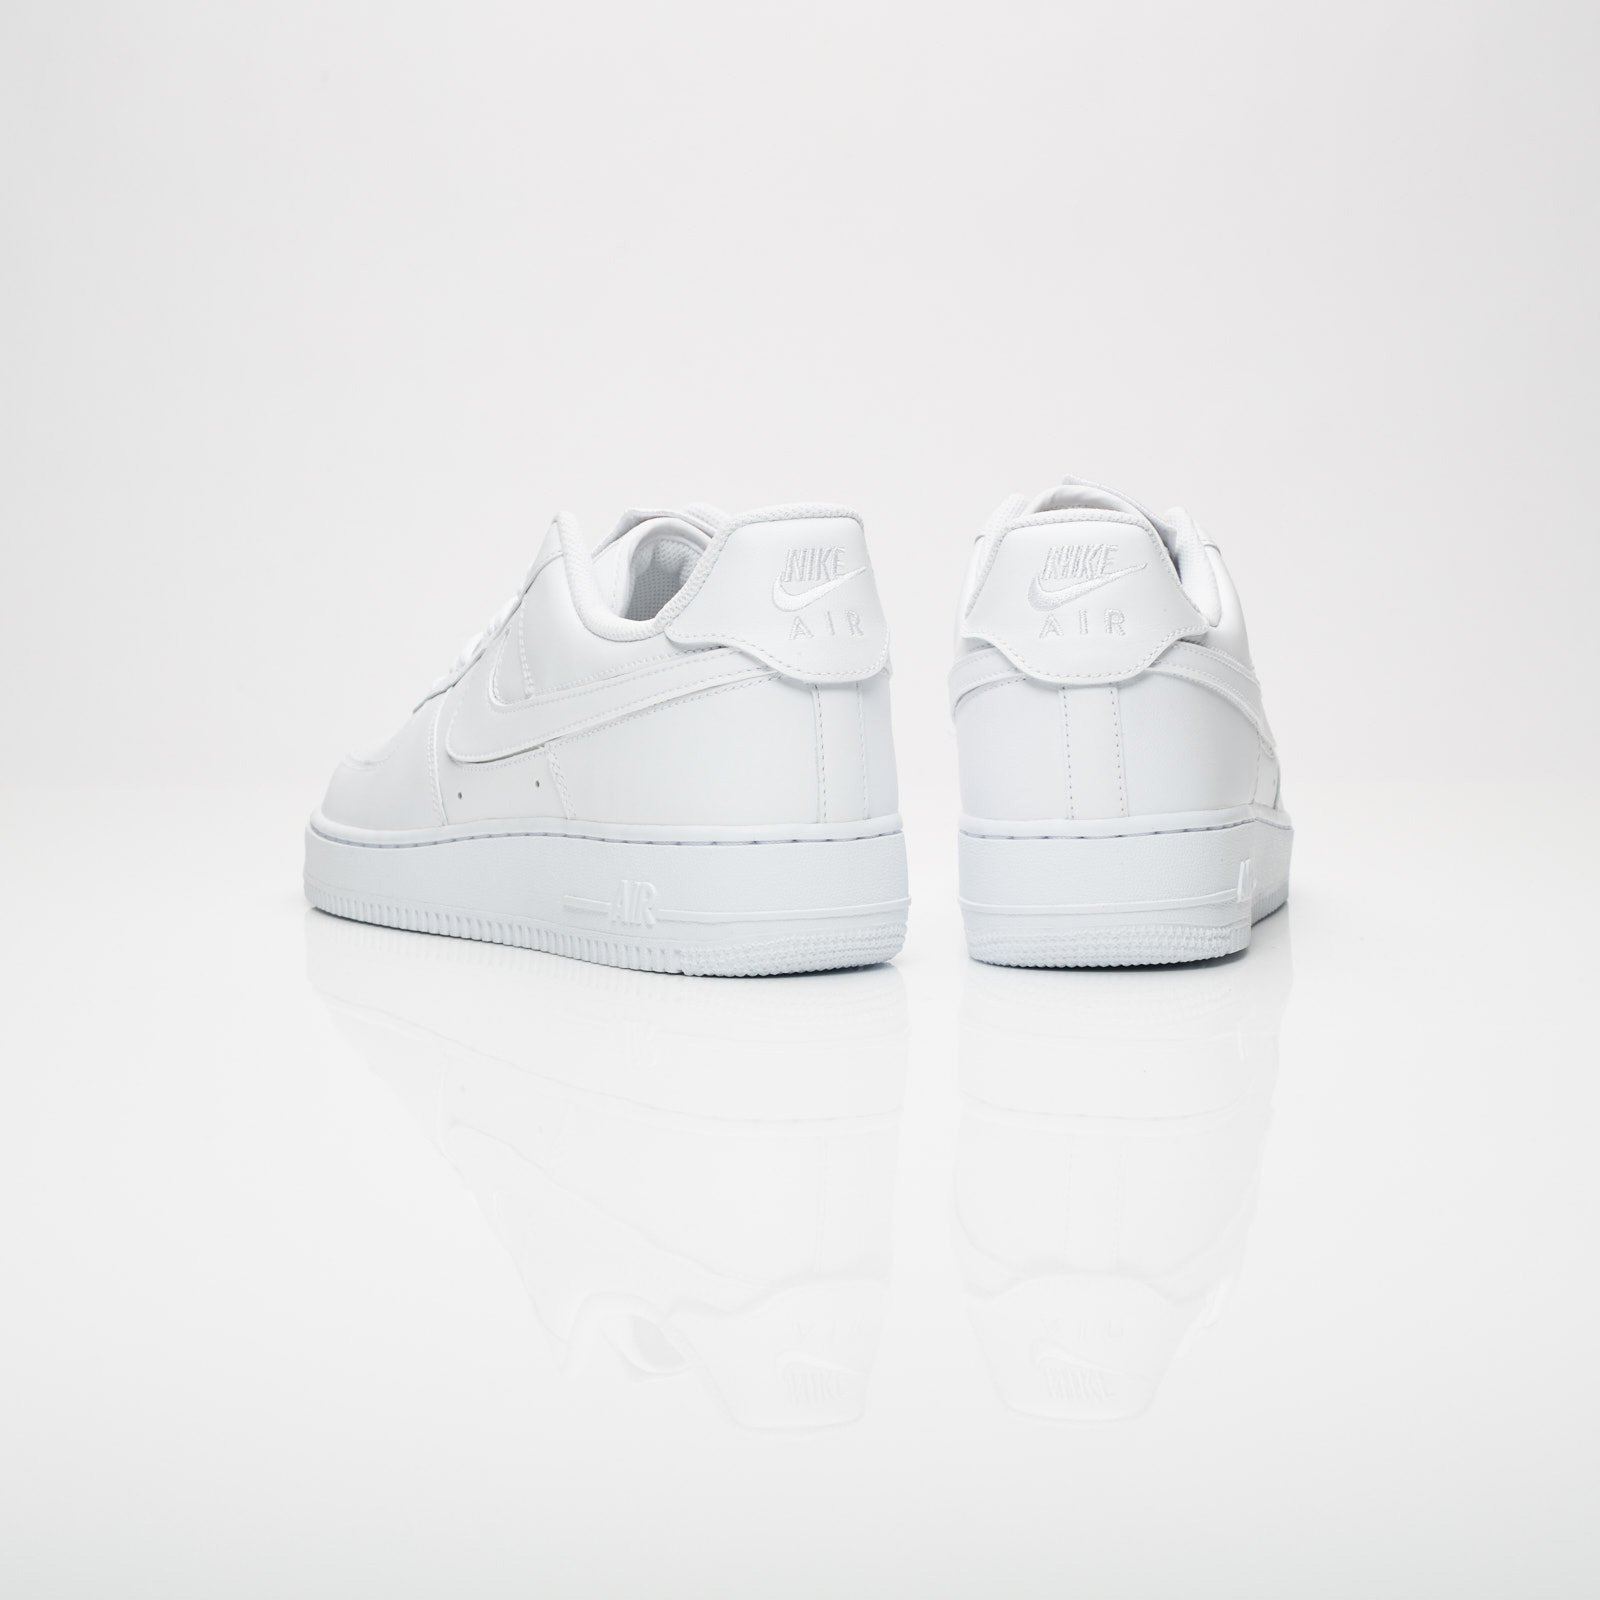 new product e8009 4f29e ... Nike Sportswear Air Force 1 07 QS ...